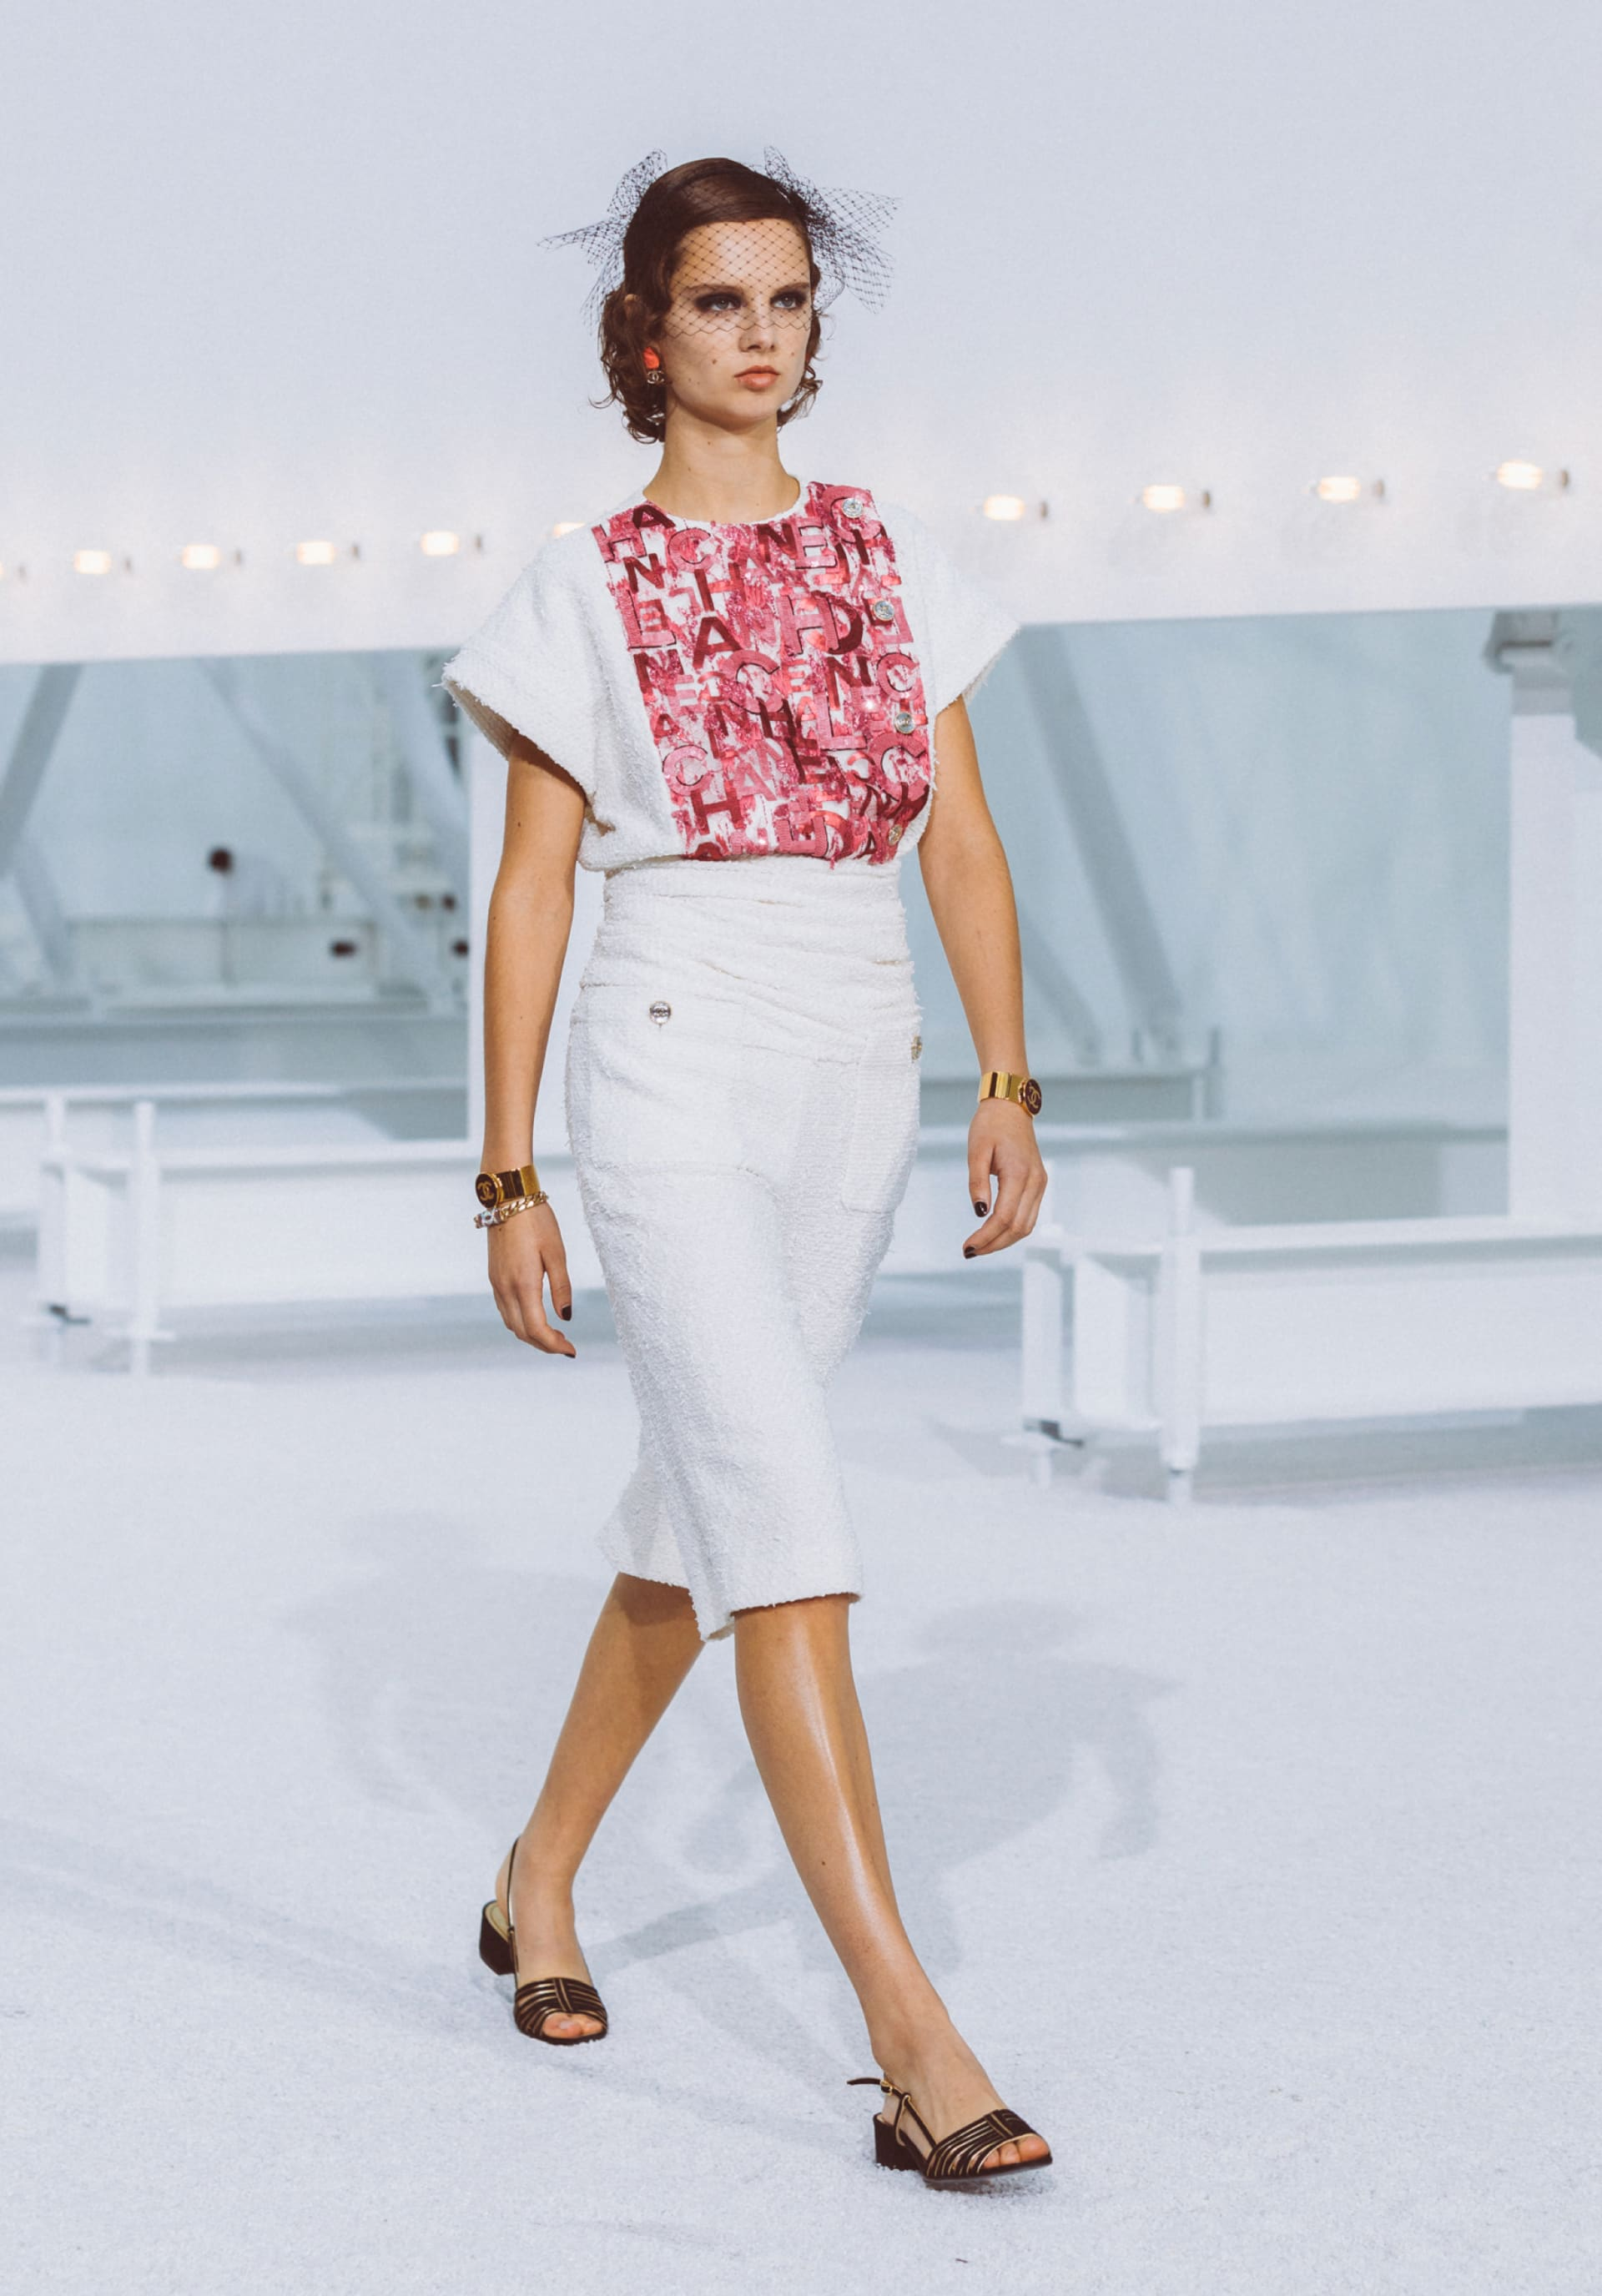 View 1 - Look29 - Spring-Summer 2021 - see full sized version